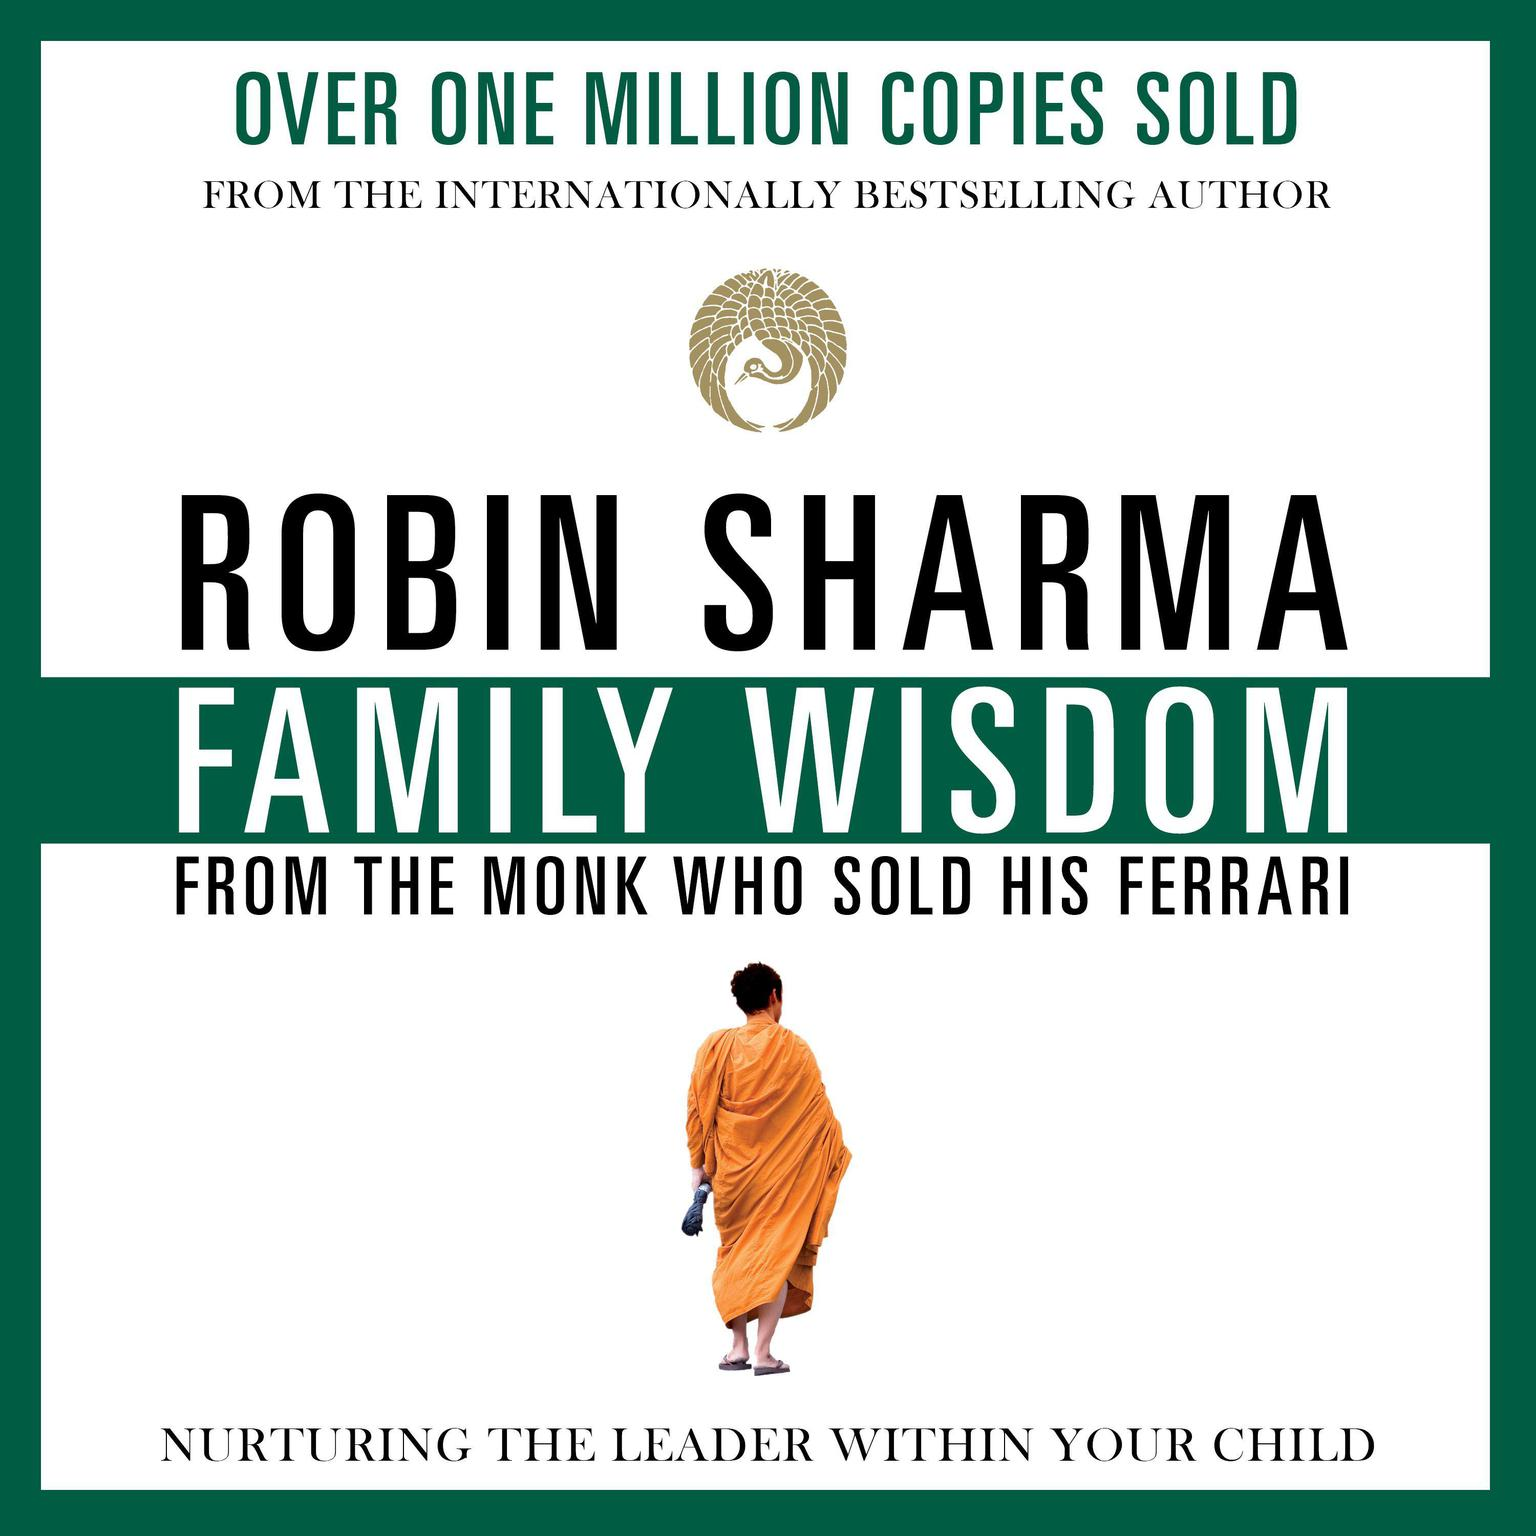 Family wisdom from the monk who sold his ferrari audiobook.